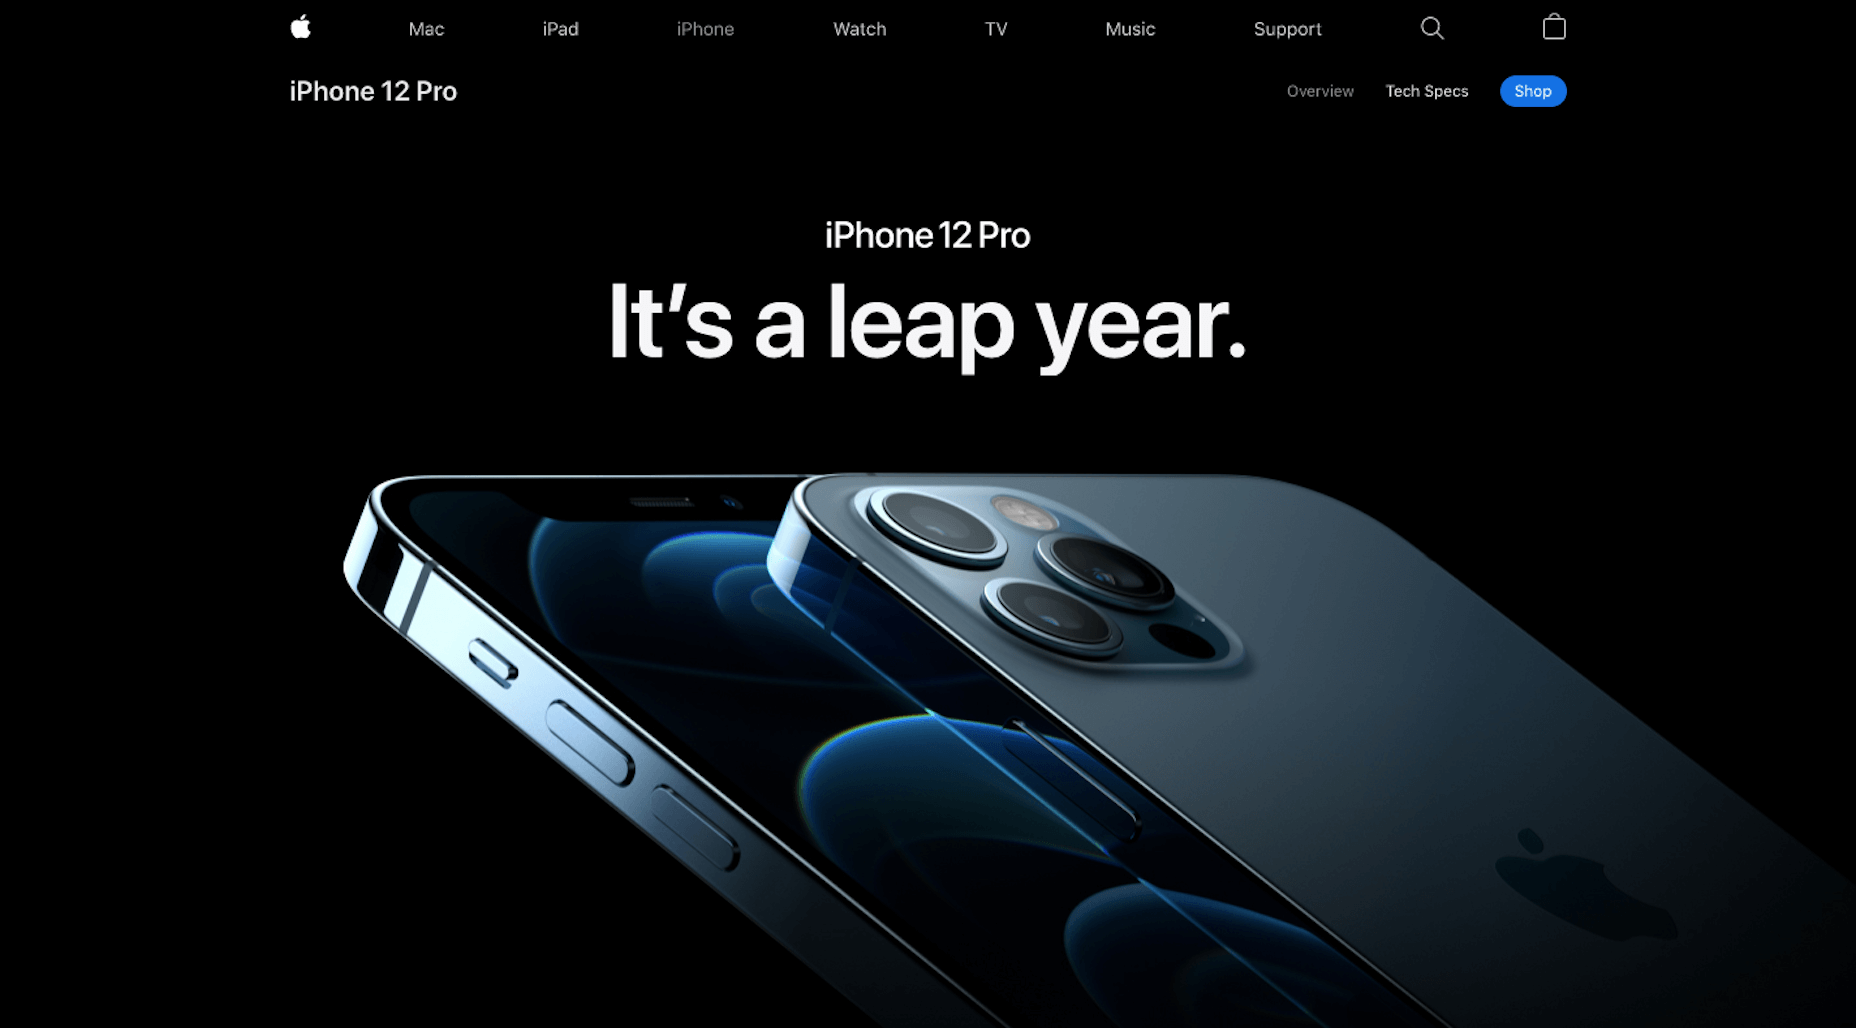 Apple page for the iPhone 12 product line